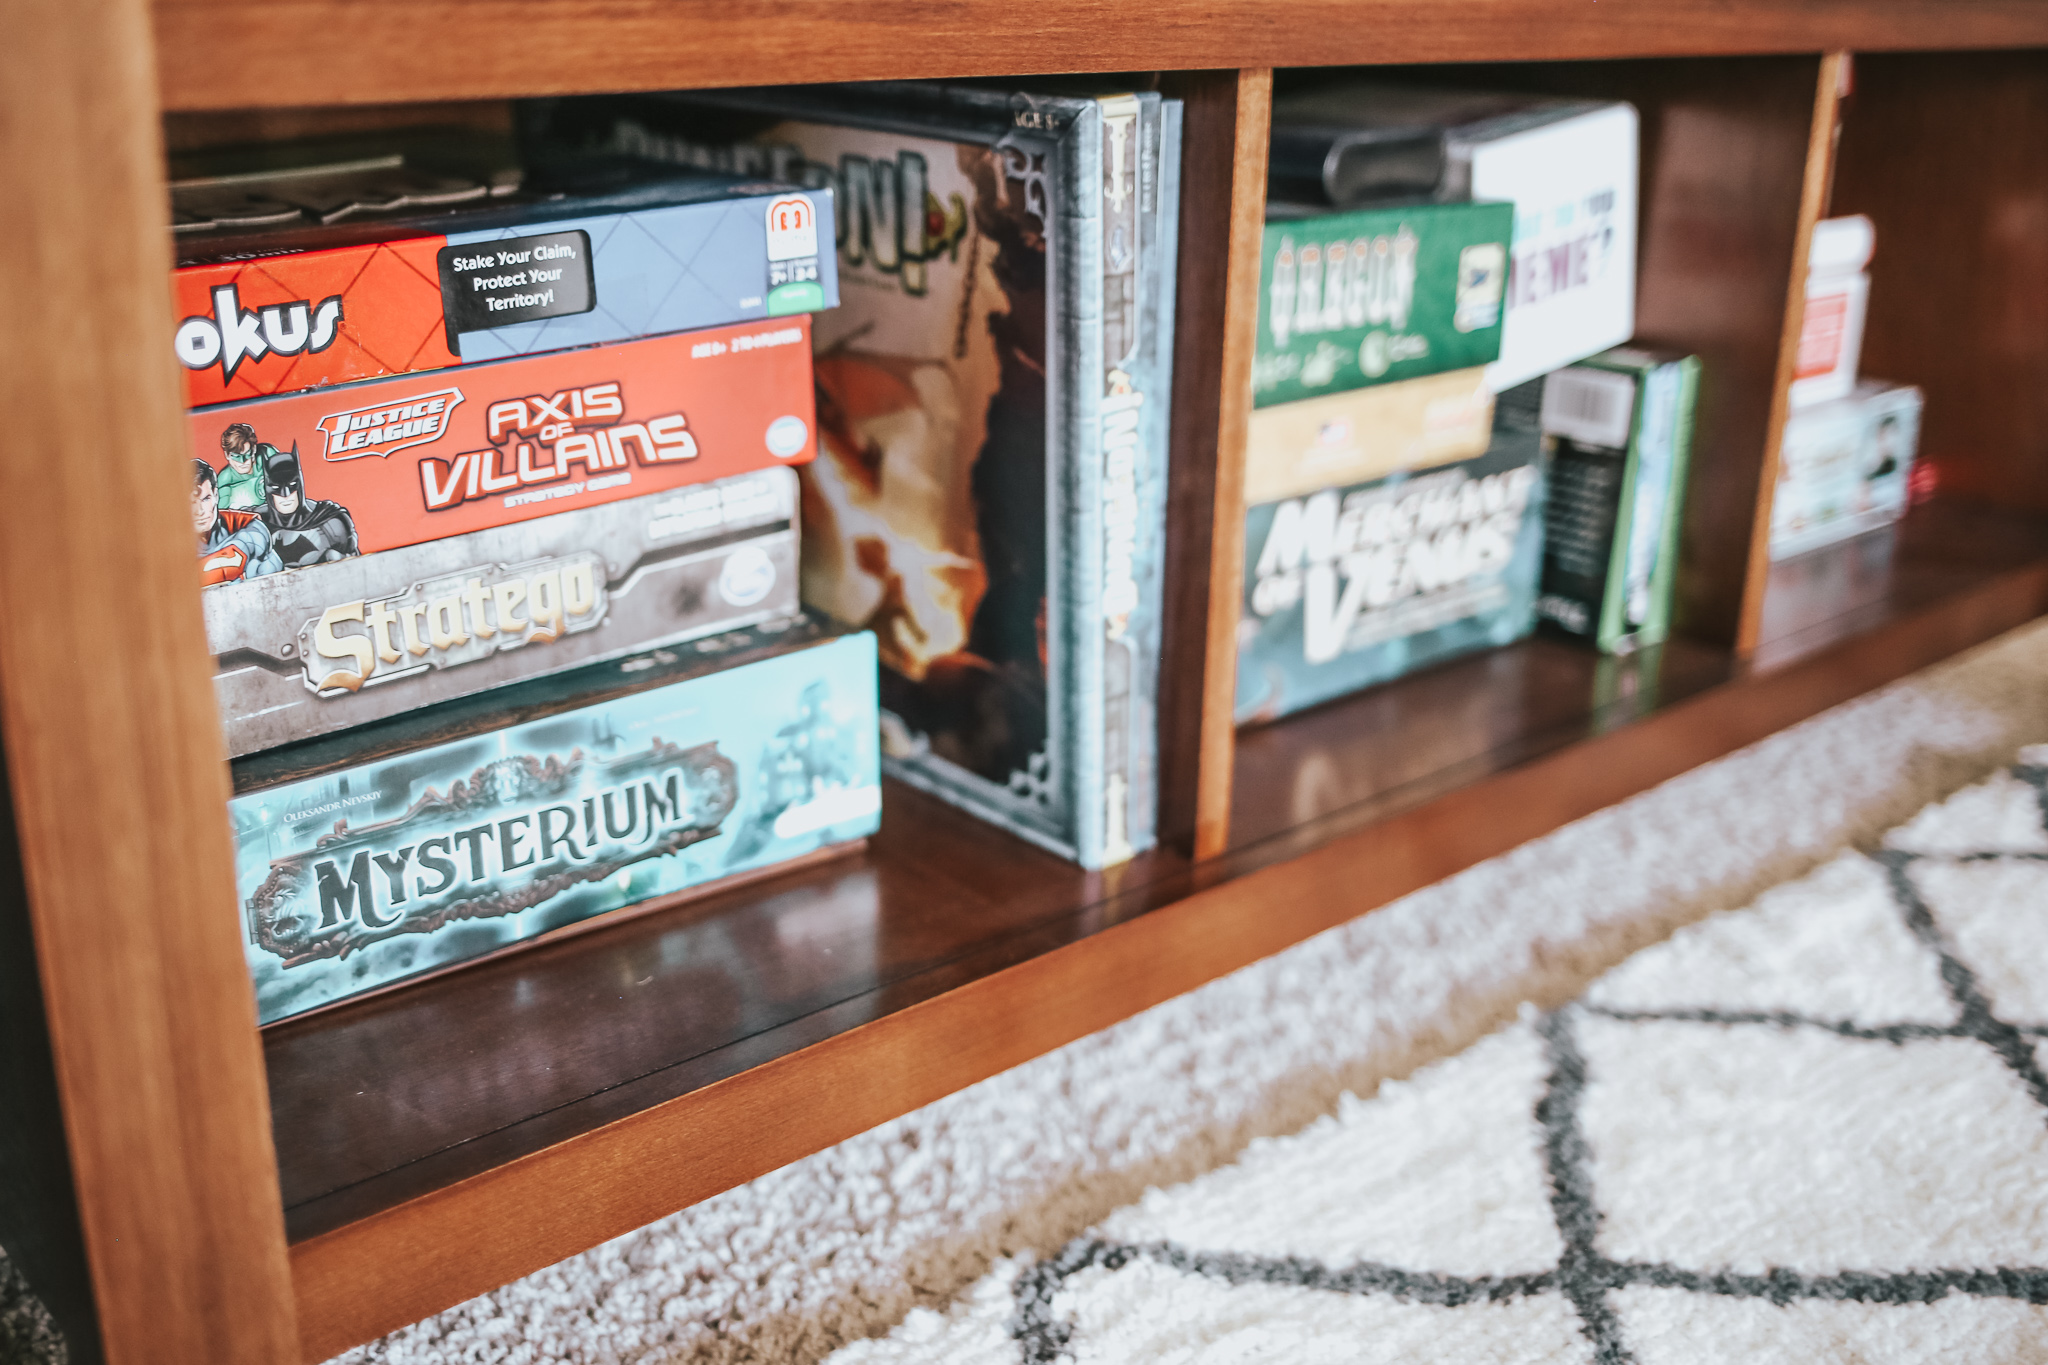 perfect storage for all of ouR board games. does anyone else love game night as much as me!?